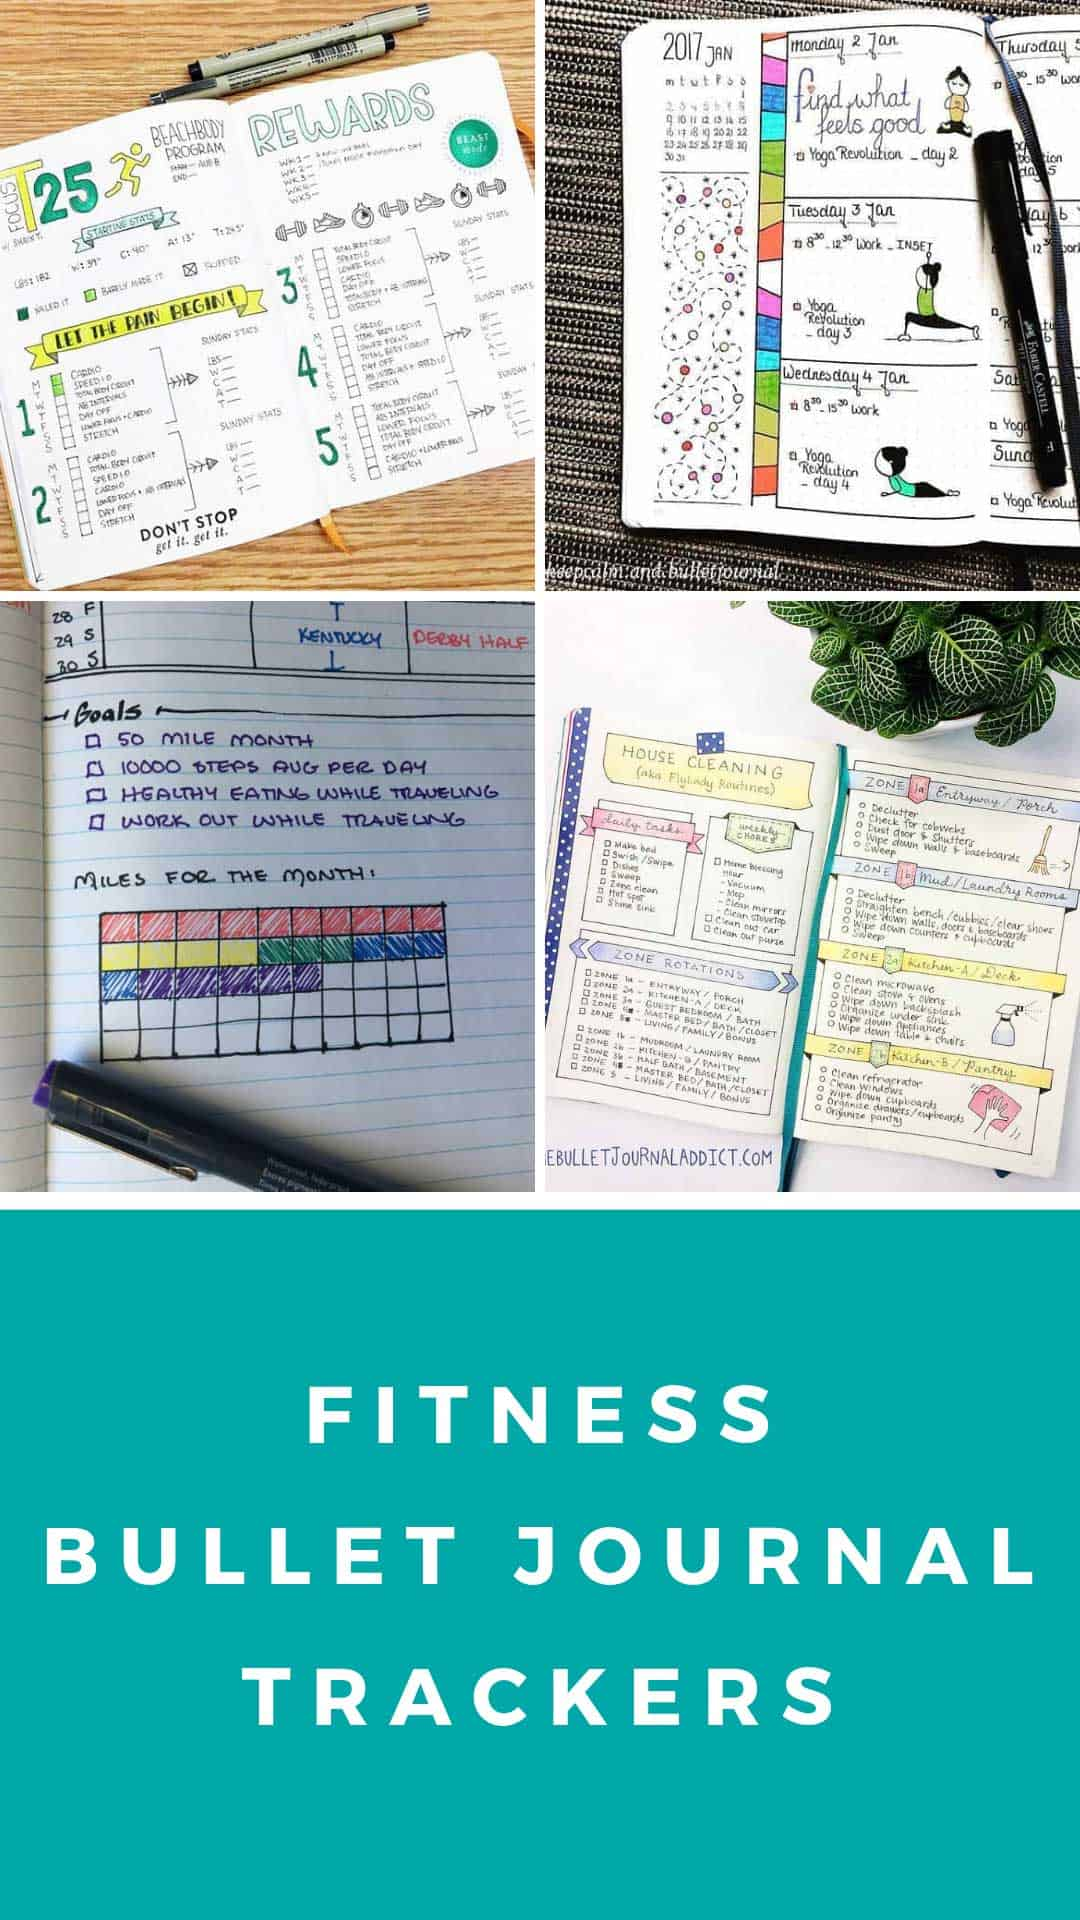 These fitness bullet journal trackers will help you monitor your goals for everything from C25K and BeachBody to yoga and weight loss #bulletjournal #fitness #exercise